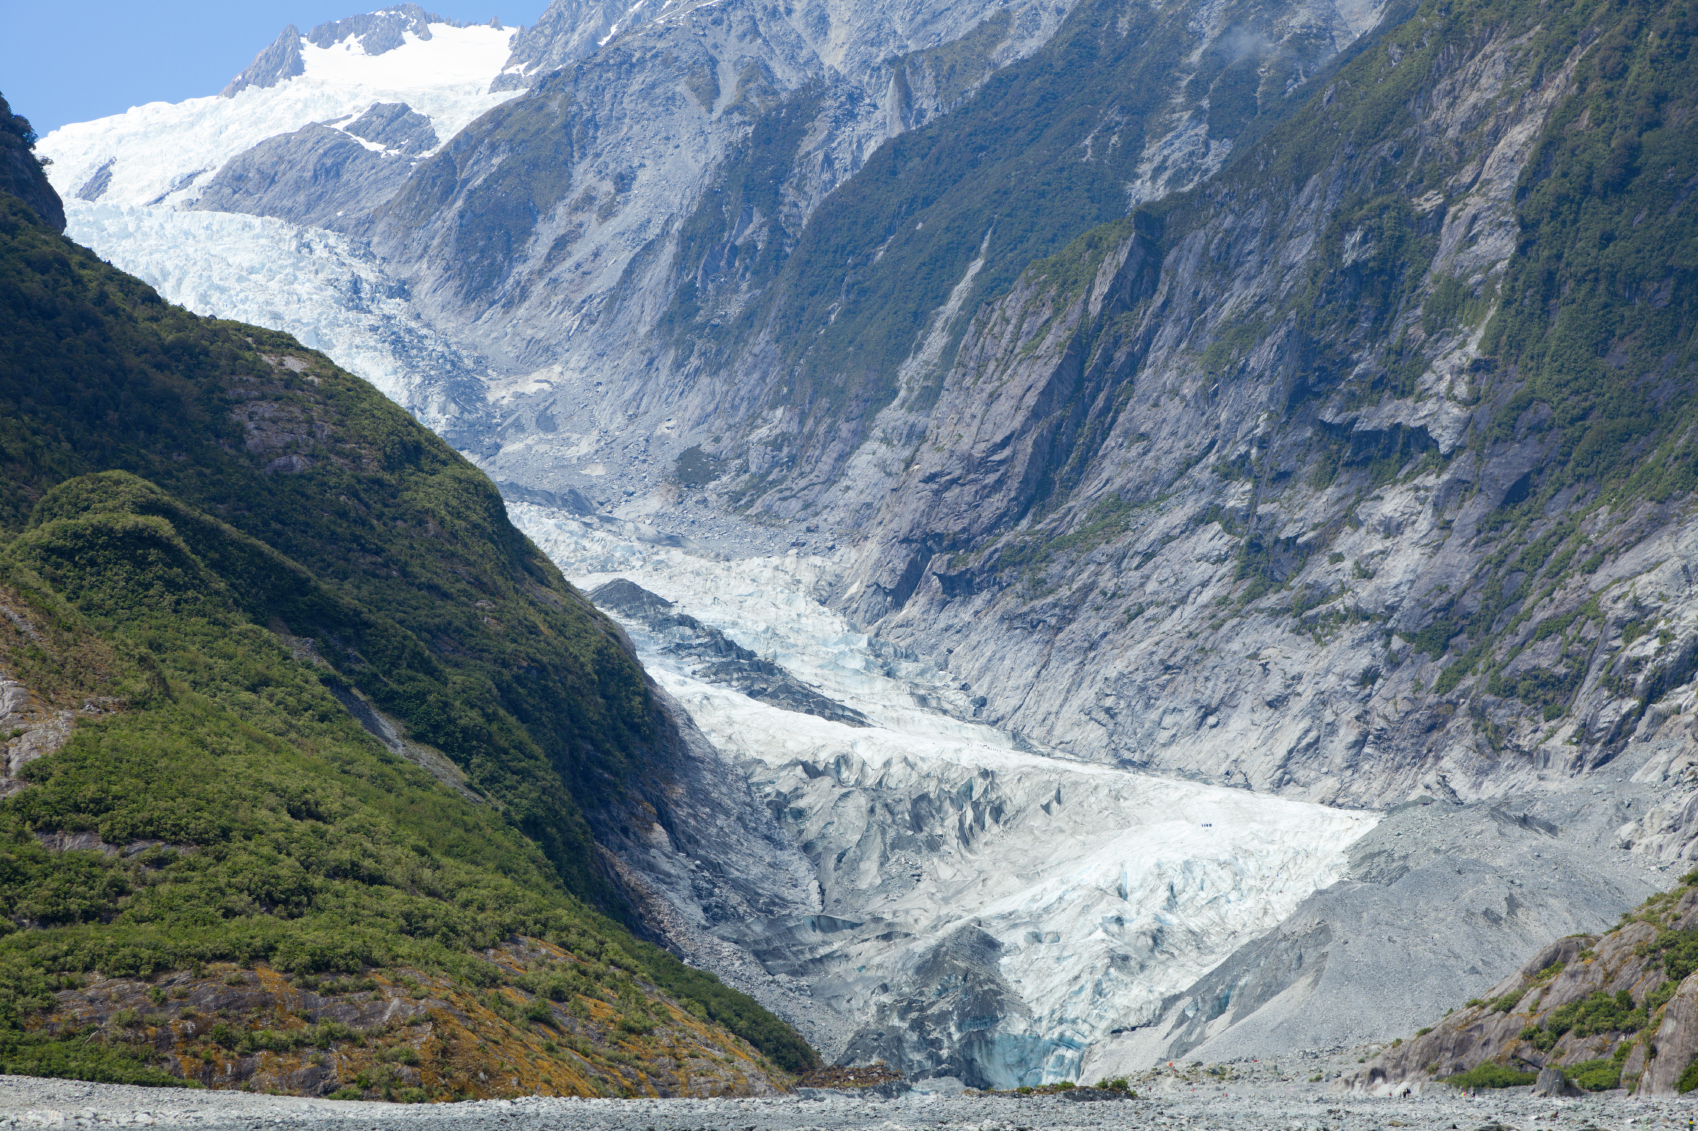 Scenic view of Franz Josef Glacier in New Zealand